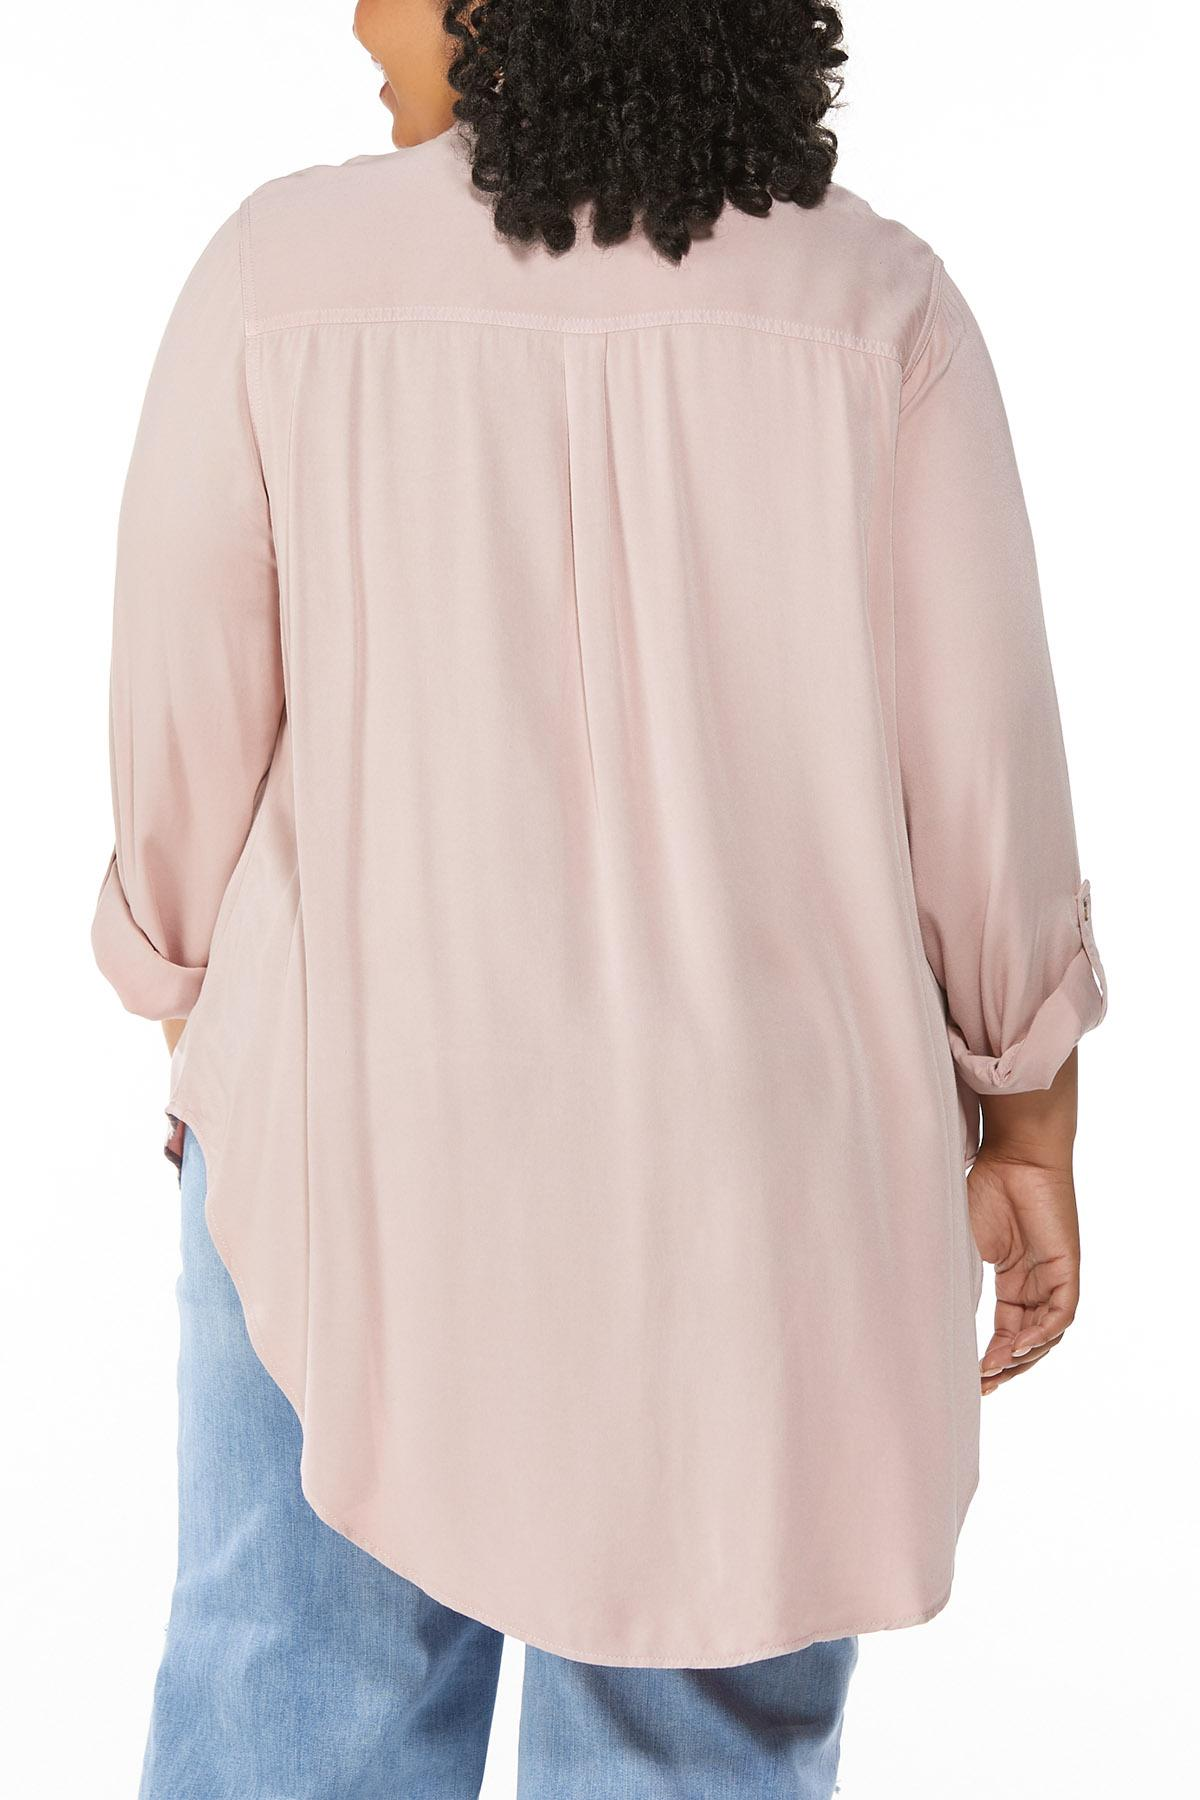 Plus Size Faded Wash Button Down Shirt (Item #44660165)